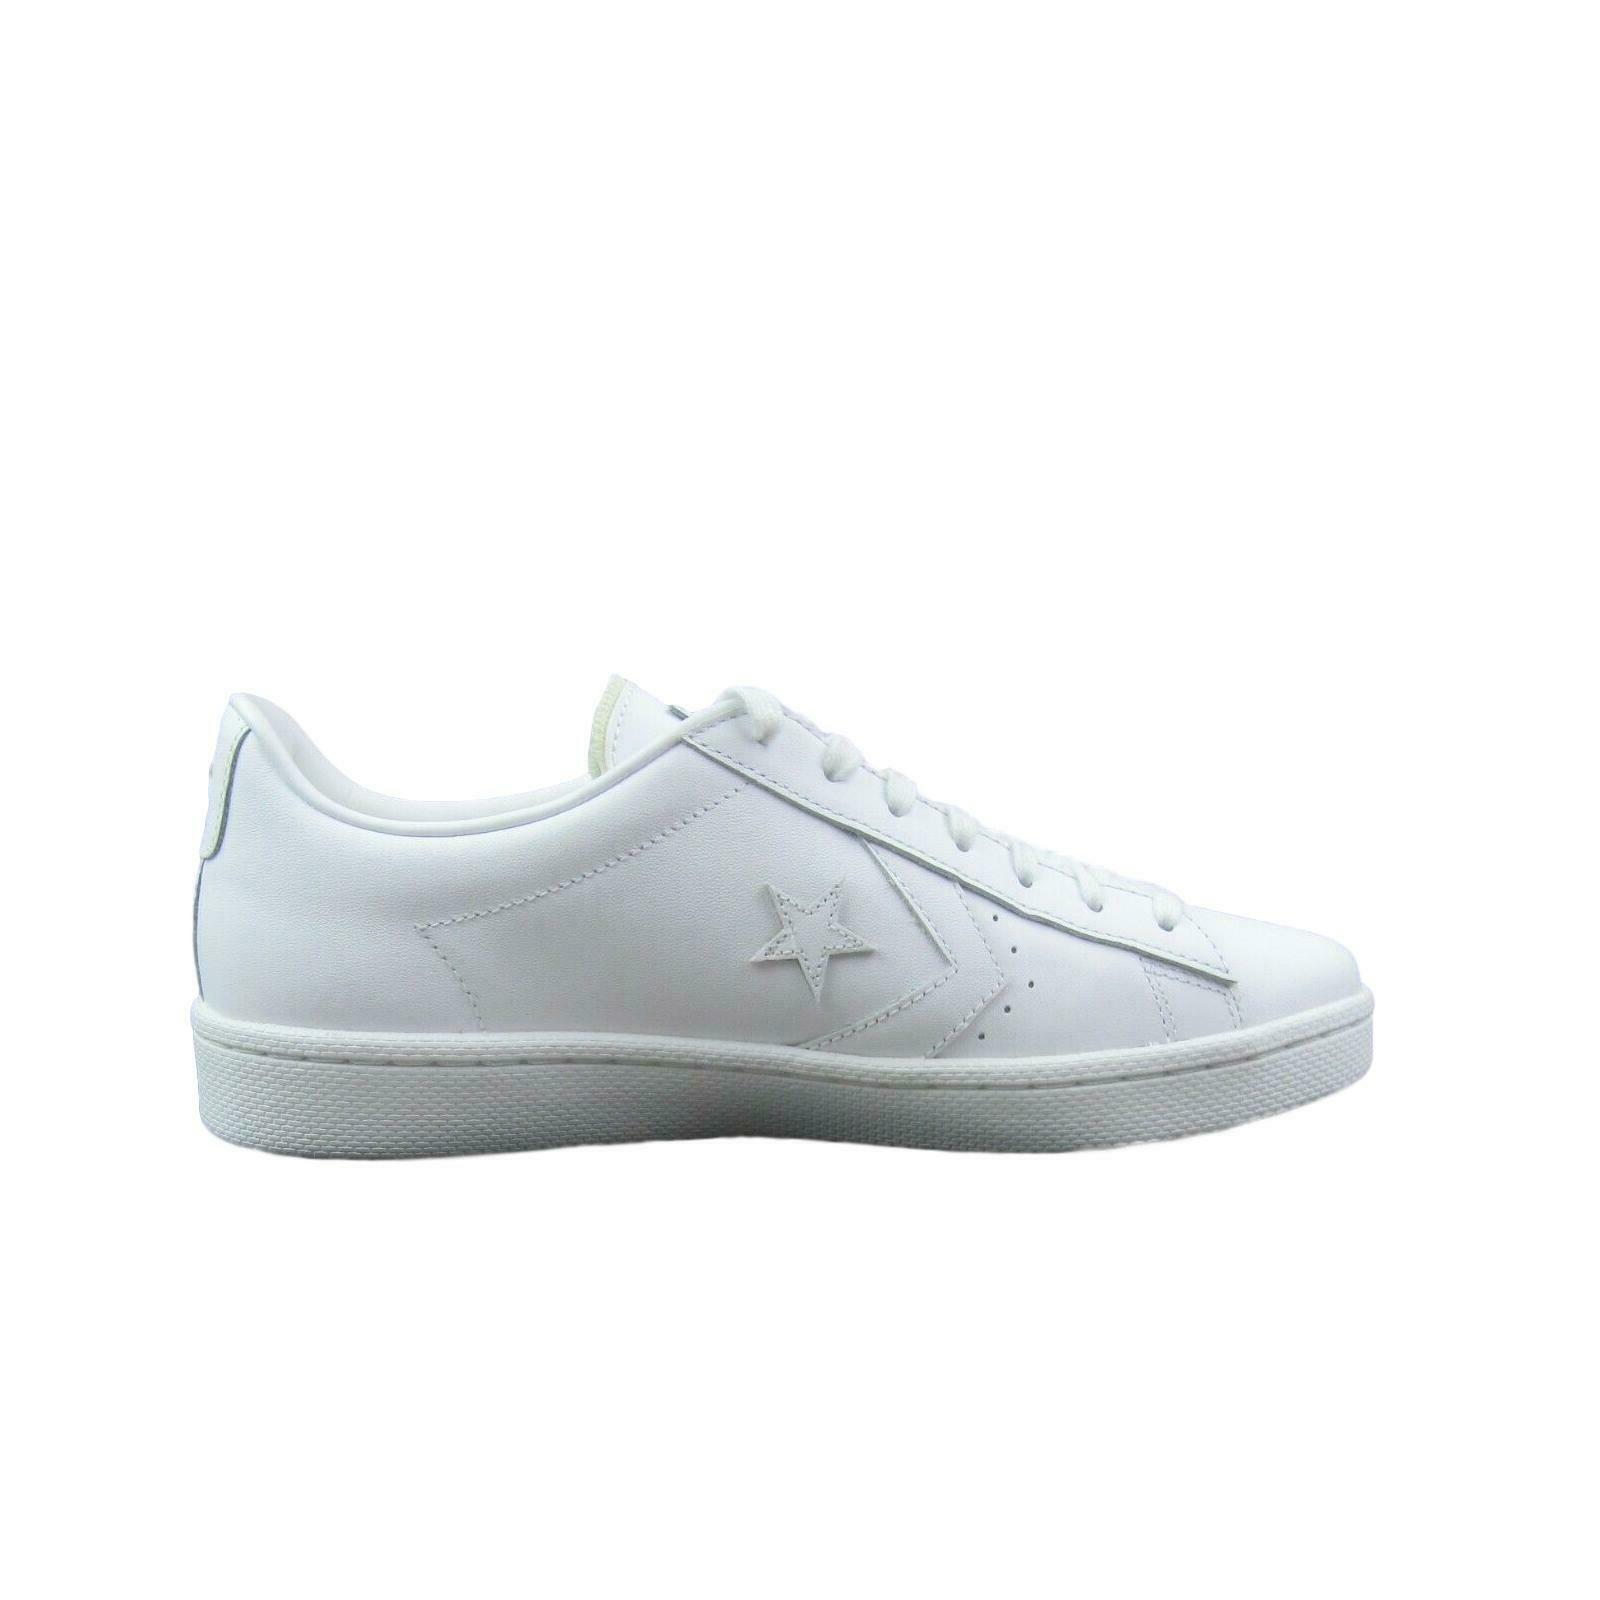 Converse Pro Leather Ox Low Triple White Shoes Size 11 Mens 155319C New